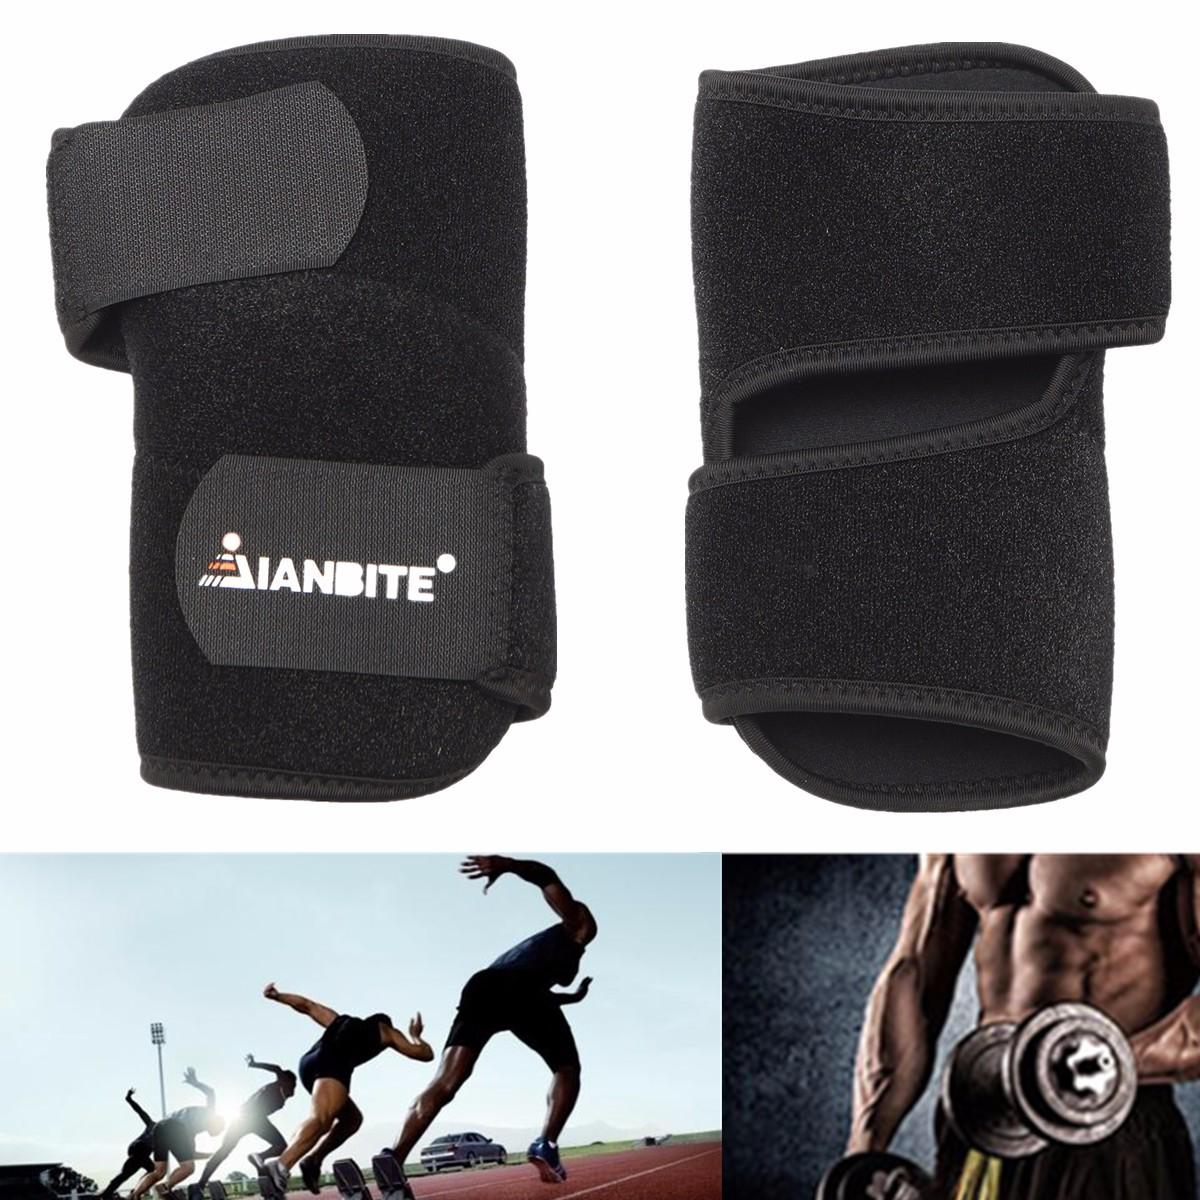 IANBITE Adjustable Neoprene Elbow Support Wrap Brace Compression Pain Relief Sports Protector